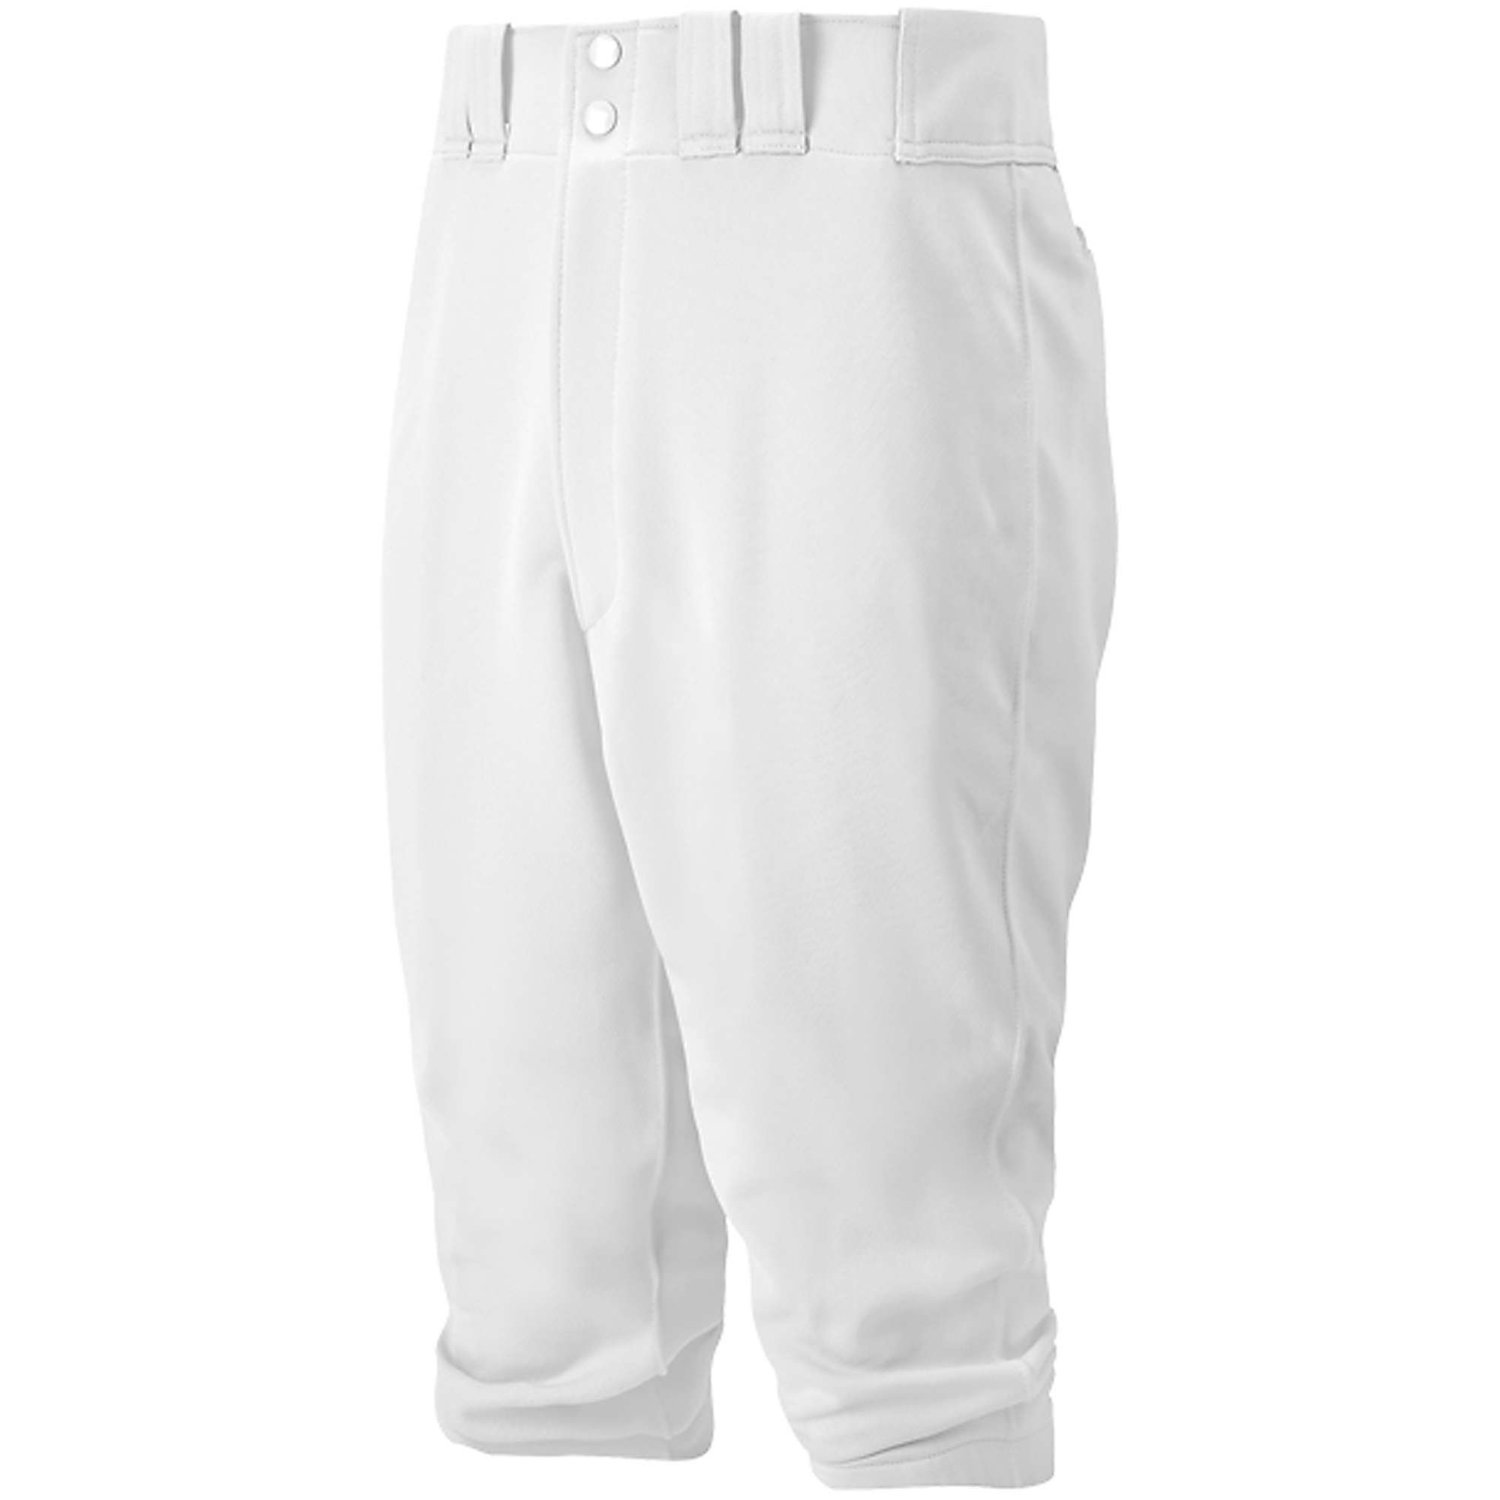 Mizuno Youth Premier Short Baseball Pant, White, Youth Large by Mizuno